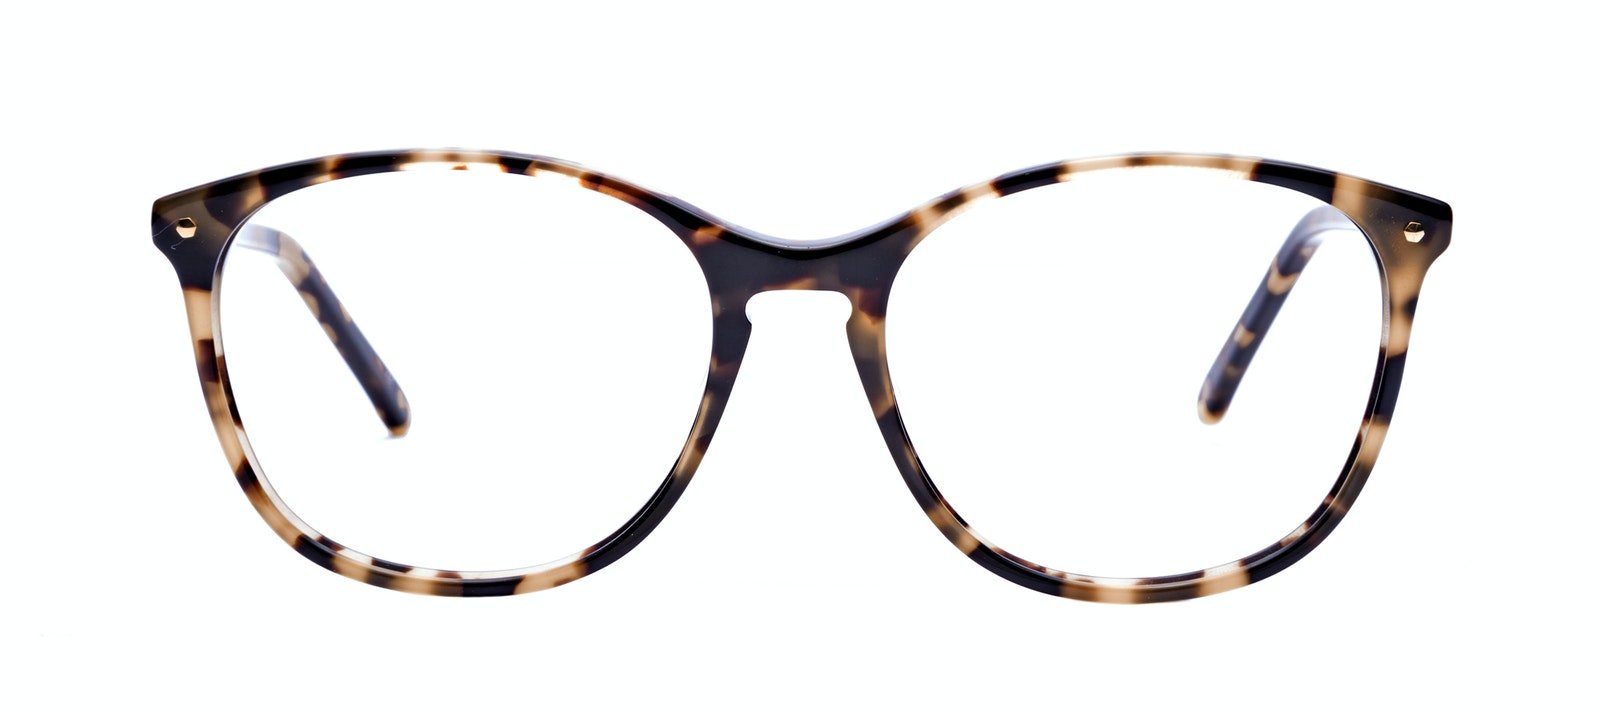 Affordable Fashion Glasses Rectangle Square Round Eyeglasses Women Nadine Bingal Front